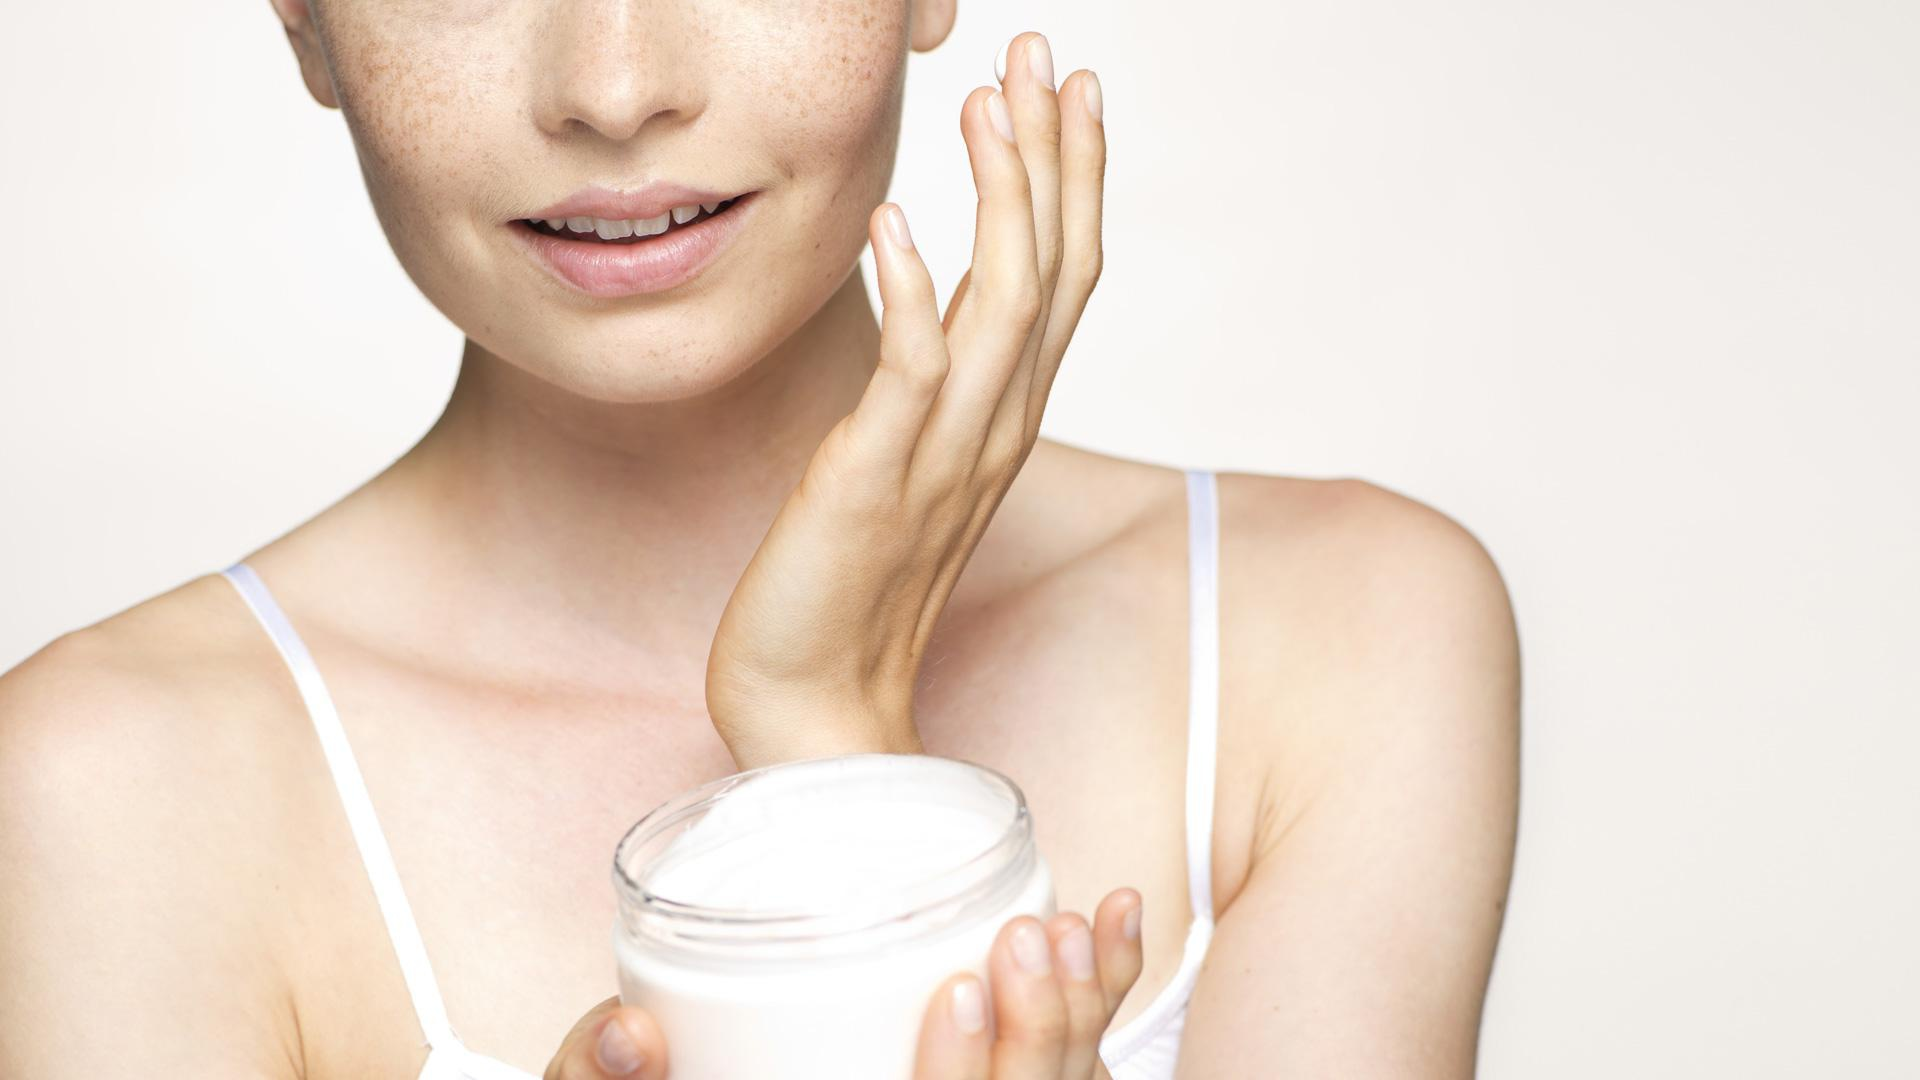 12 Must-have skin care products